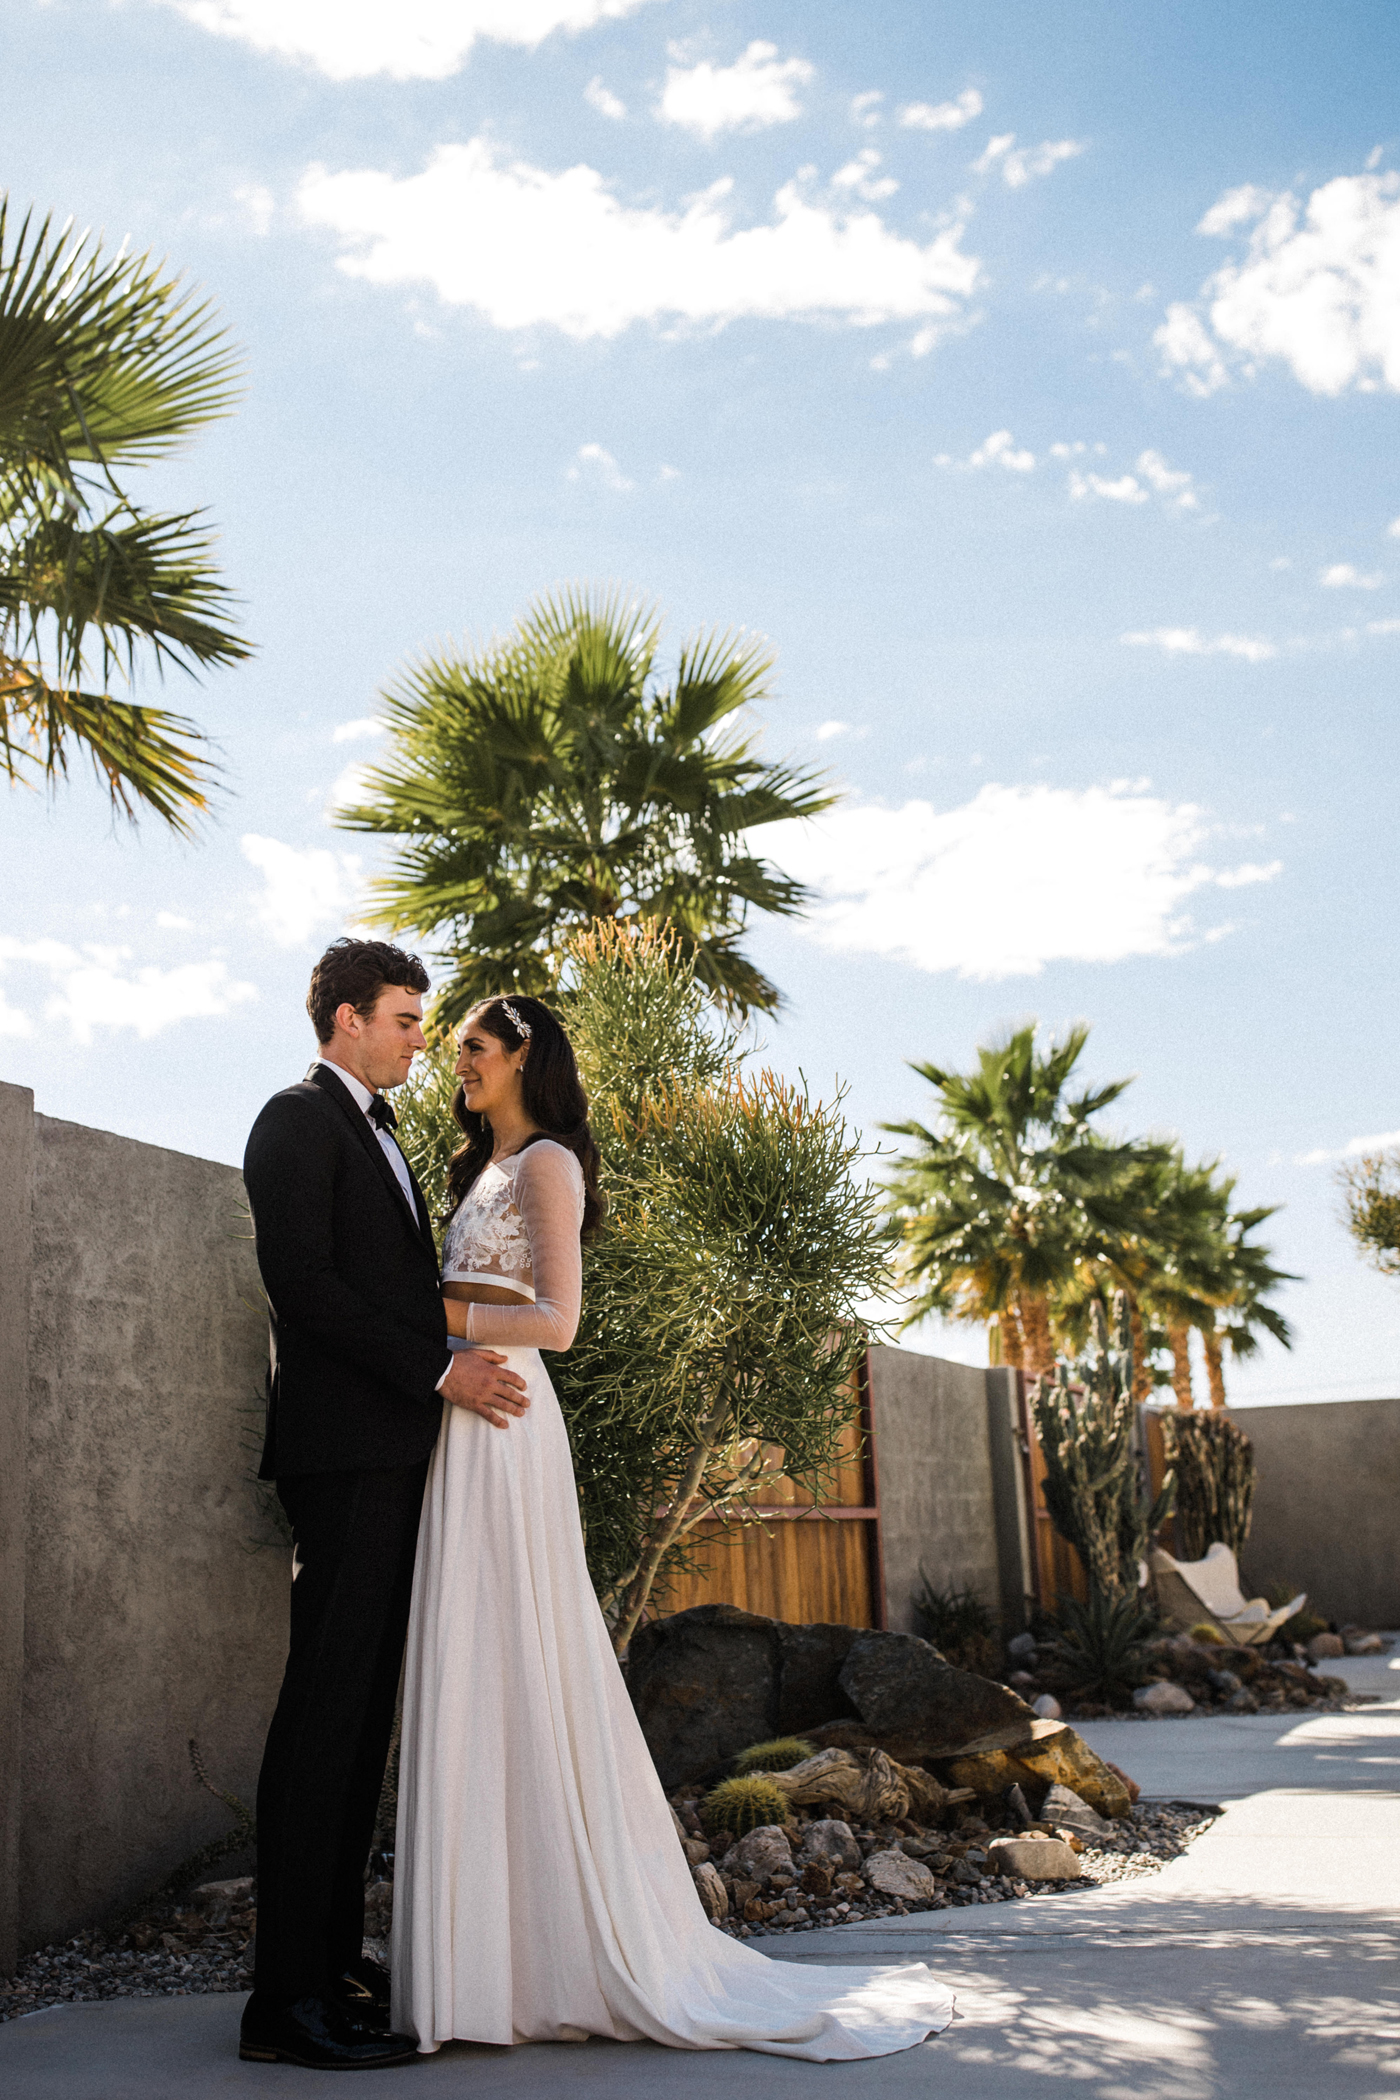 The-Lautner-Compound-Wedding-Palm-Springs-24.jpg